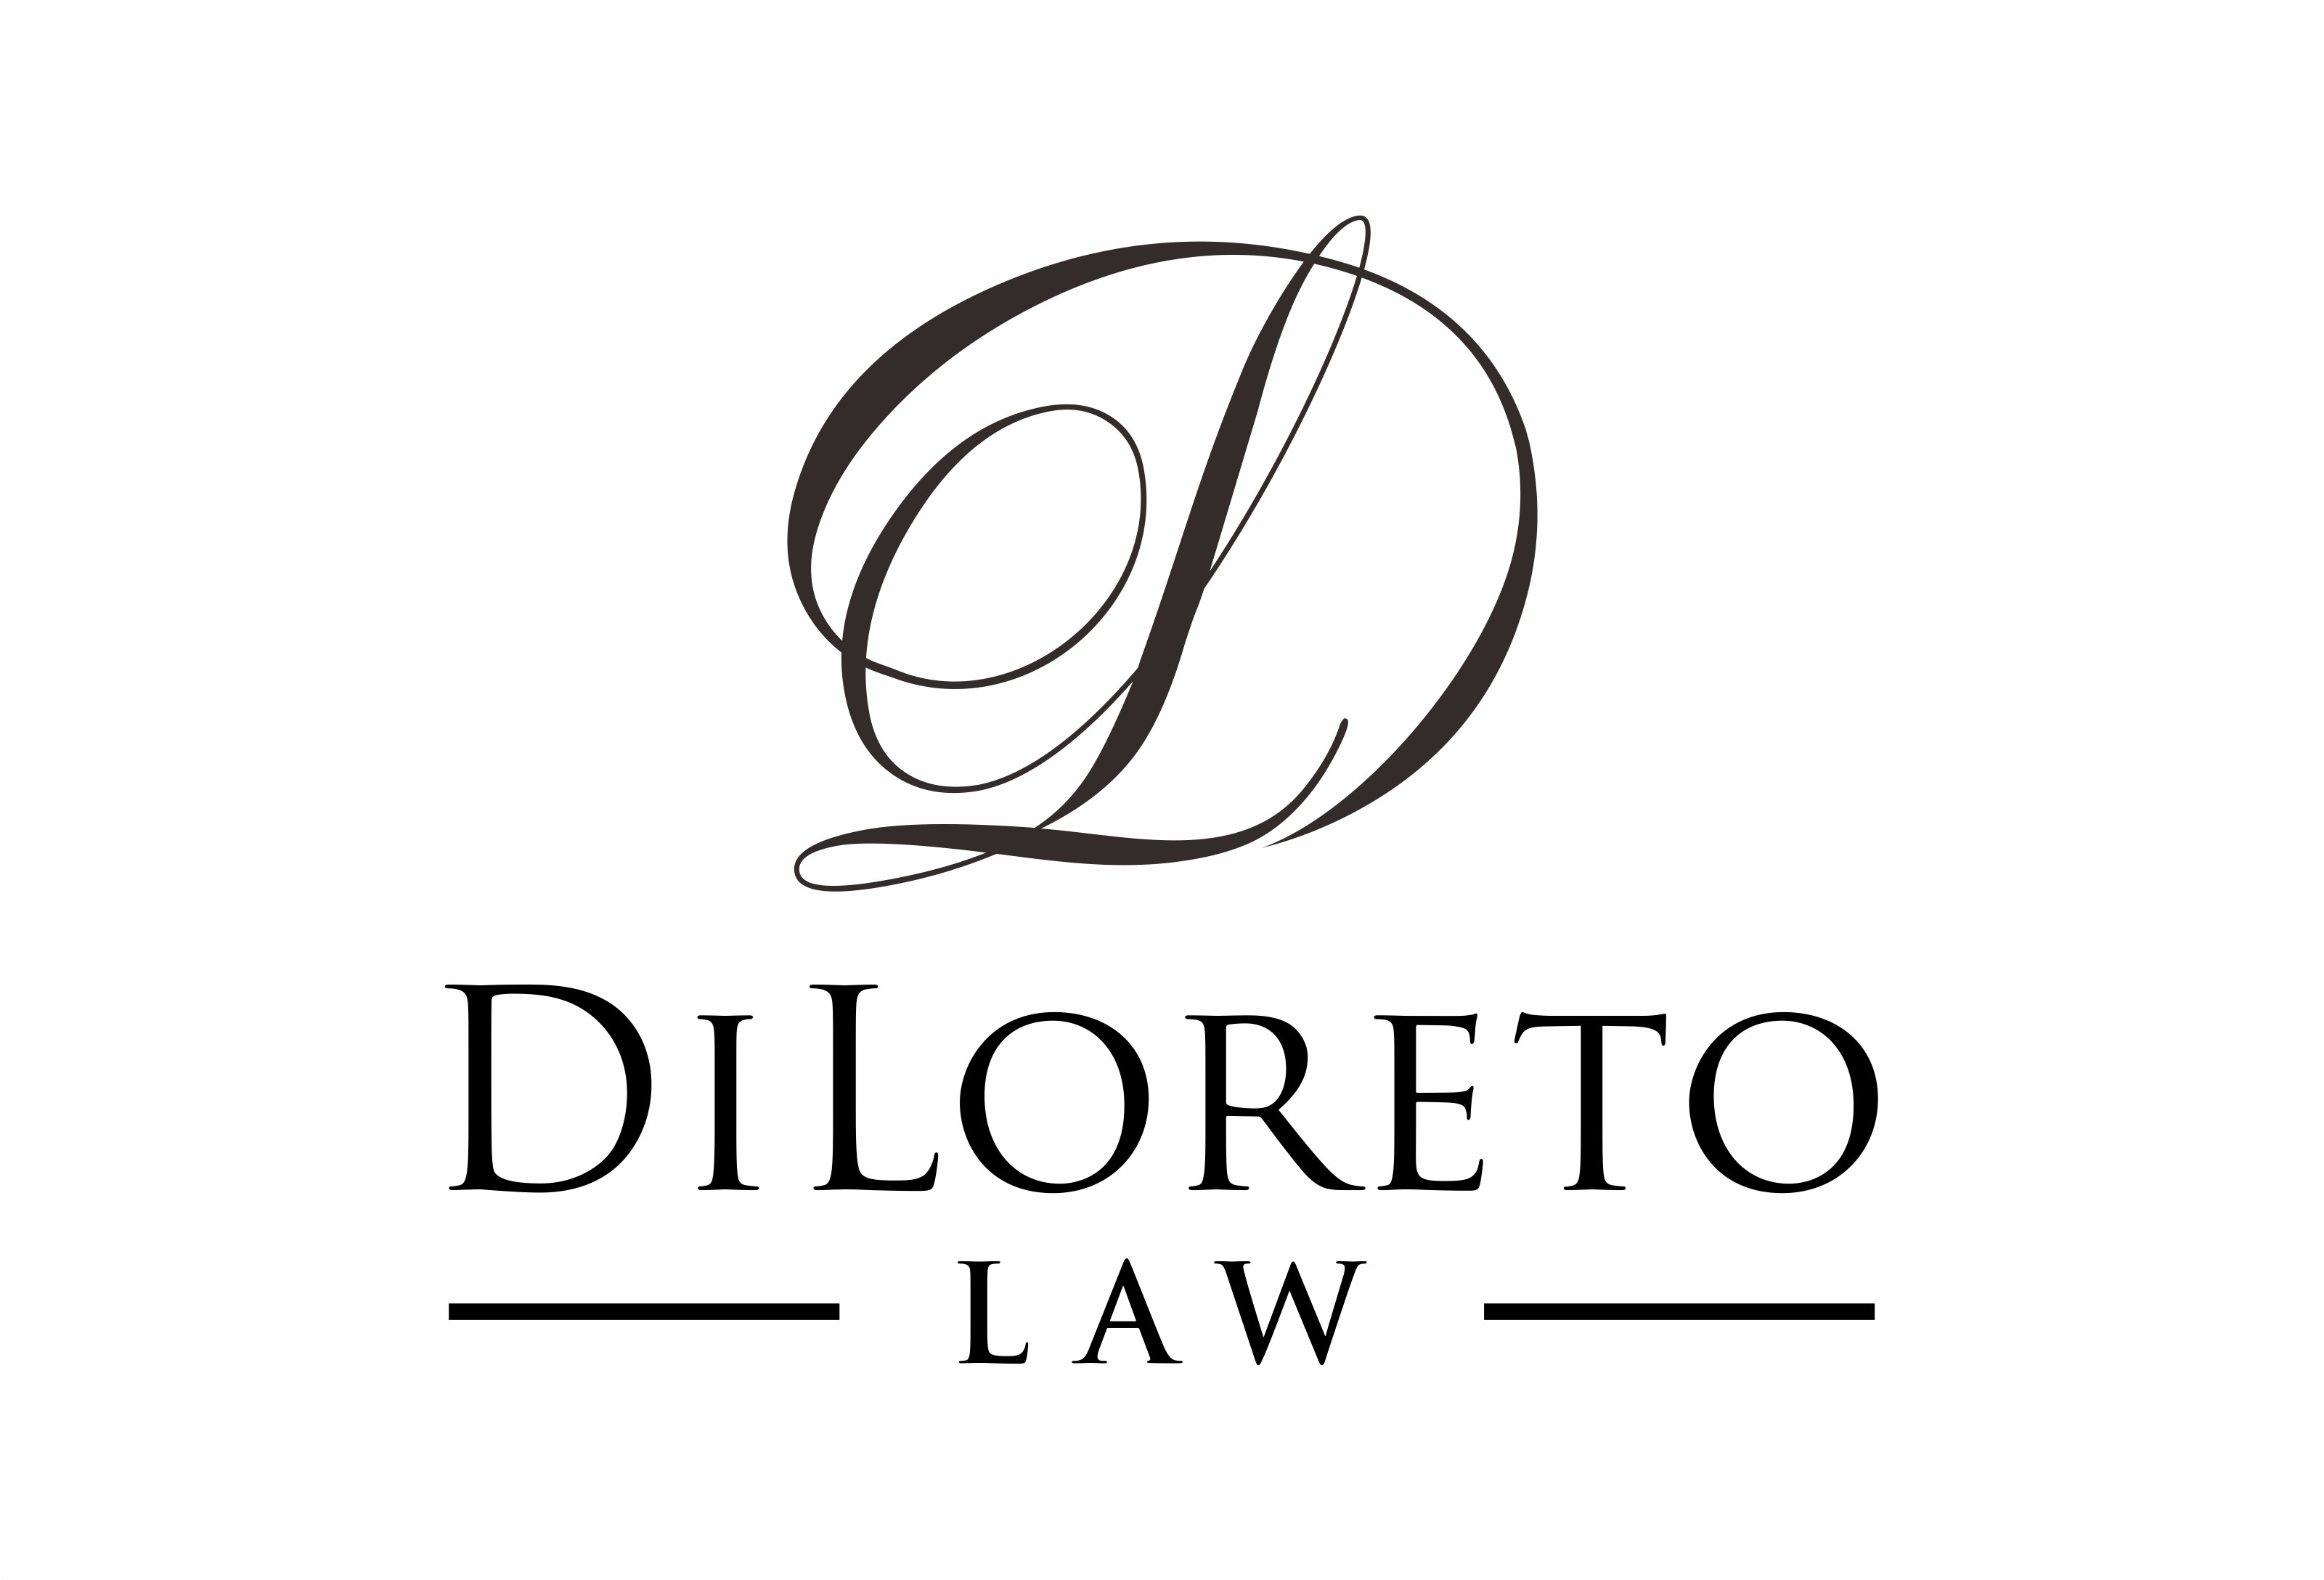 Elder law and estate planning law firm needs new logo